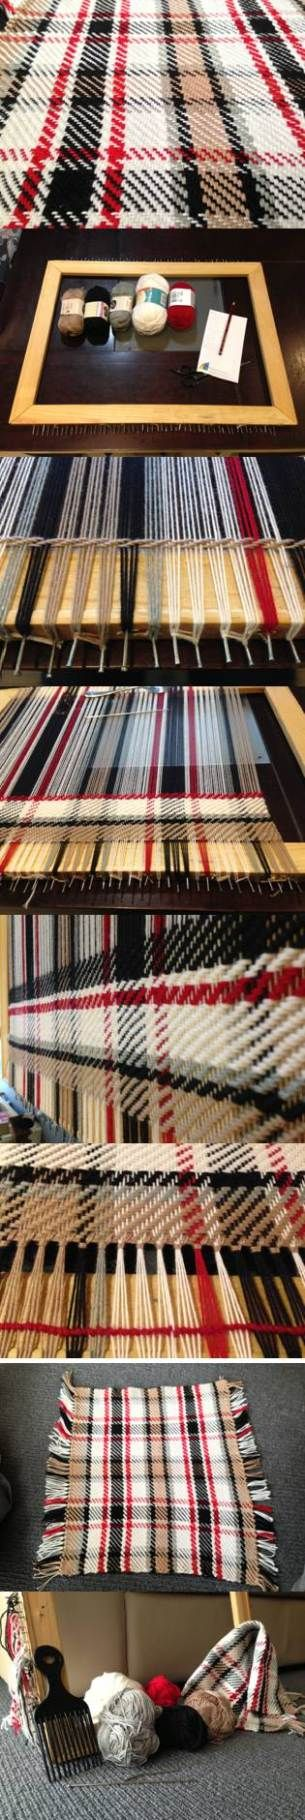 The process of weaving a plaid on a home made frame loom. -- I did the same thing with handspun wool!..